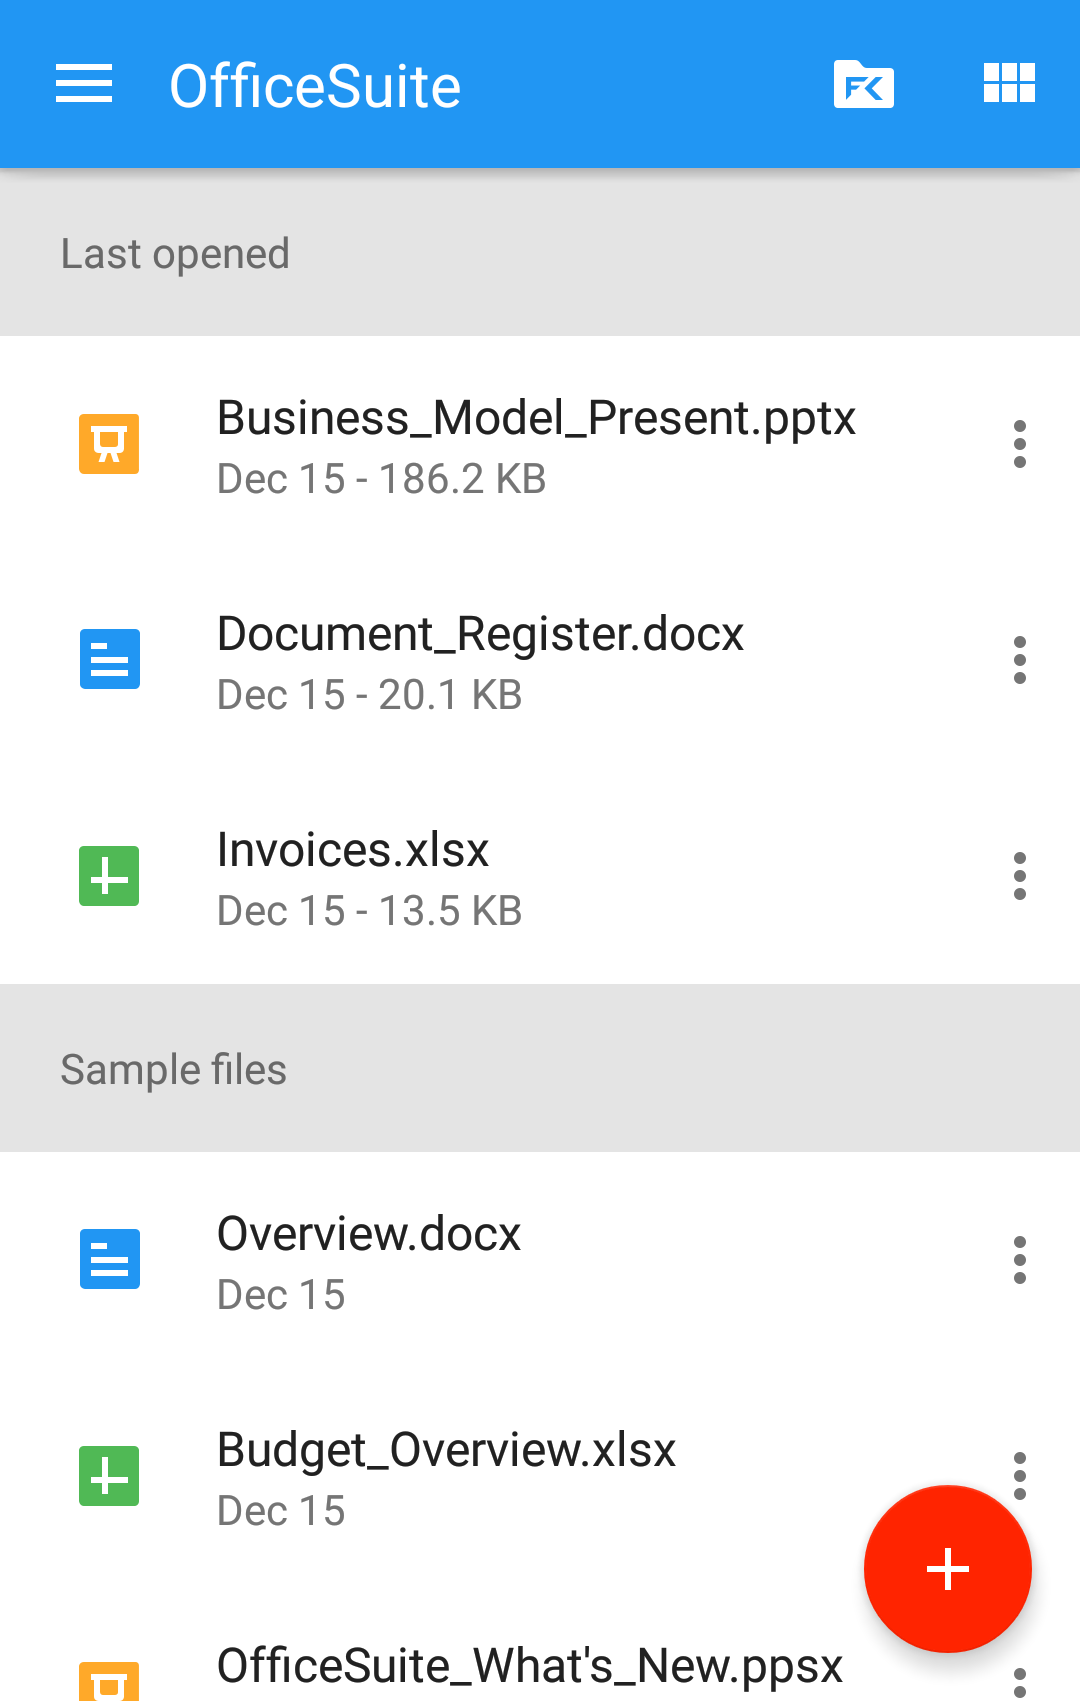 officesuite 8 pro apk full version free download